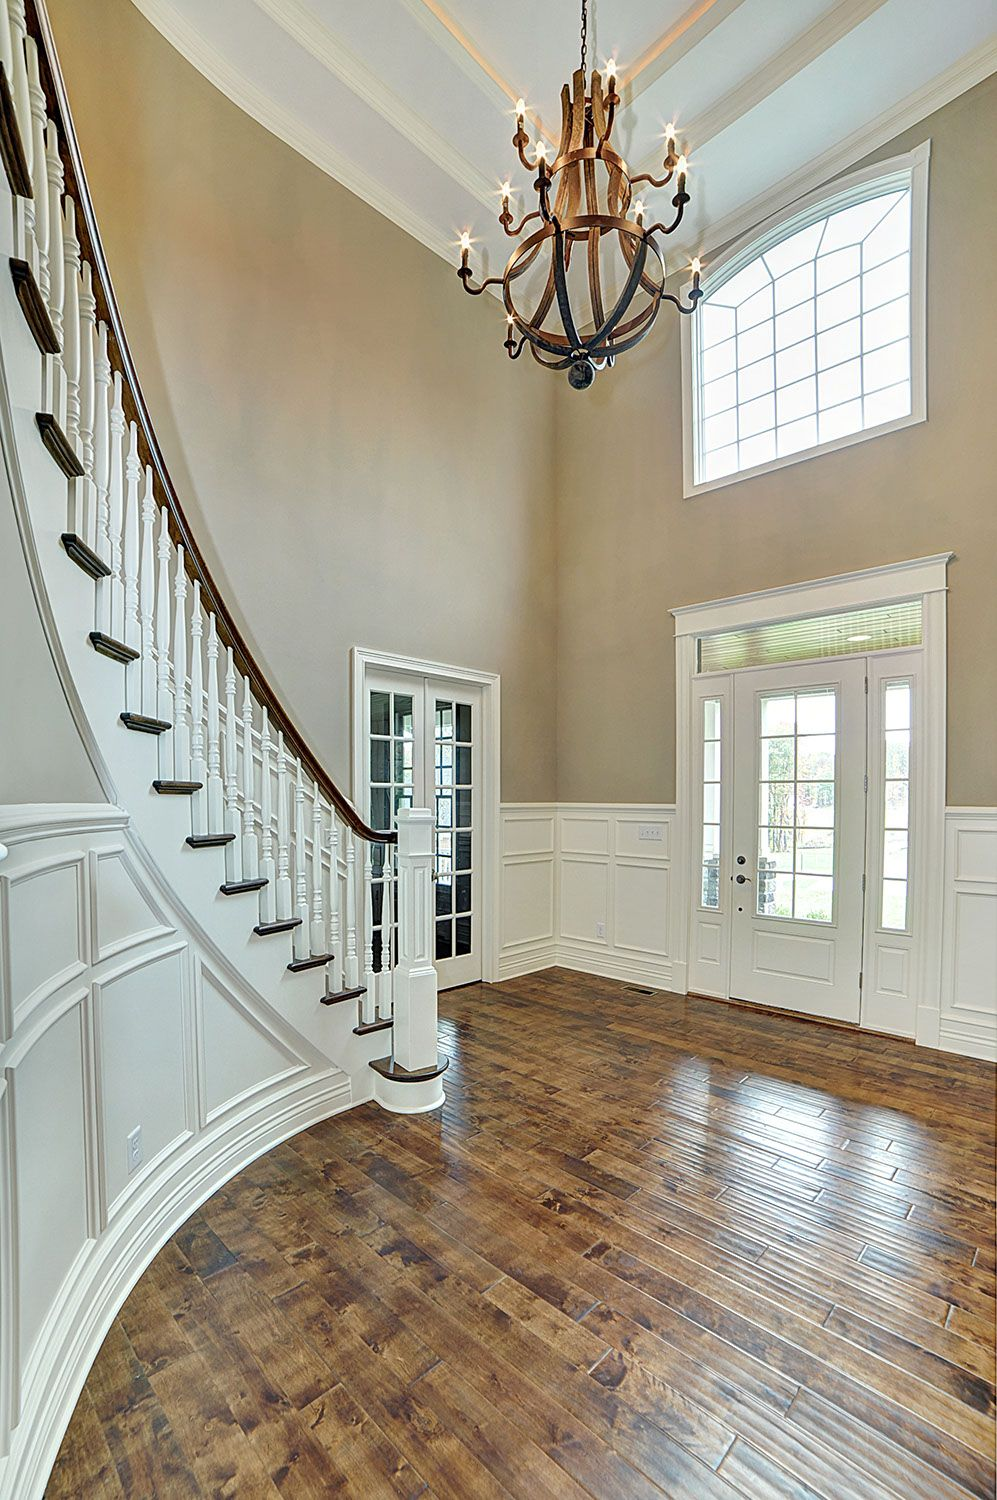 Stairs In Foyer : Curved staircase in two story foyer with white wainscoting